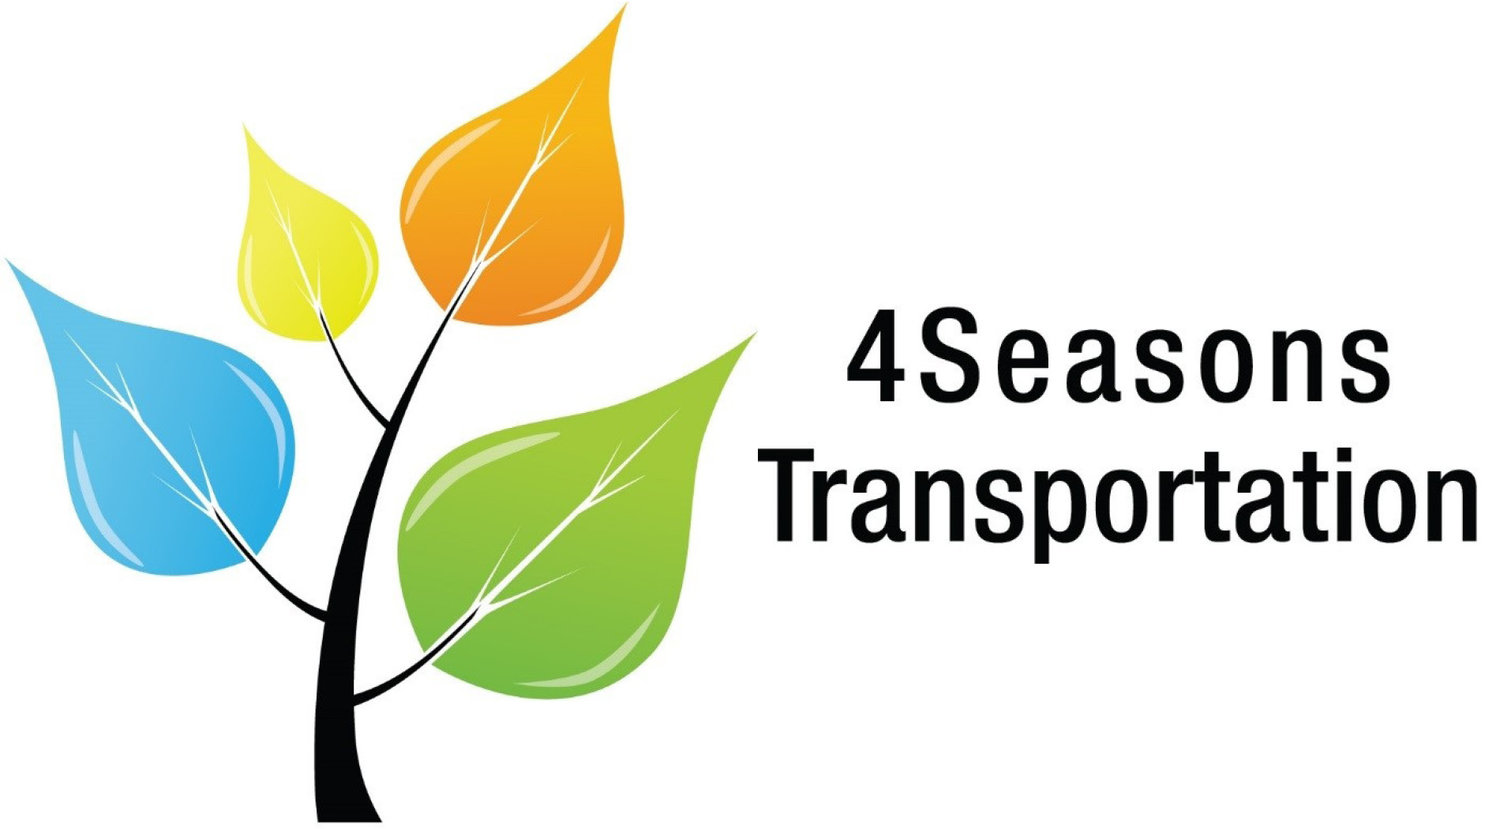 4 Seasons Transportation